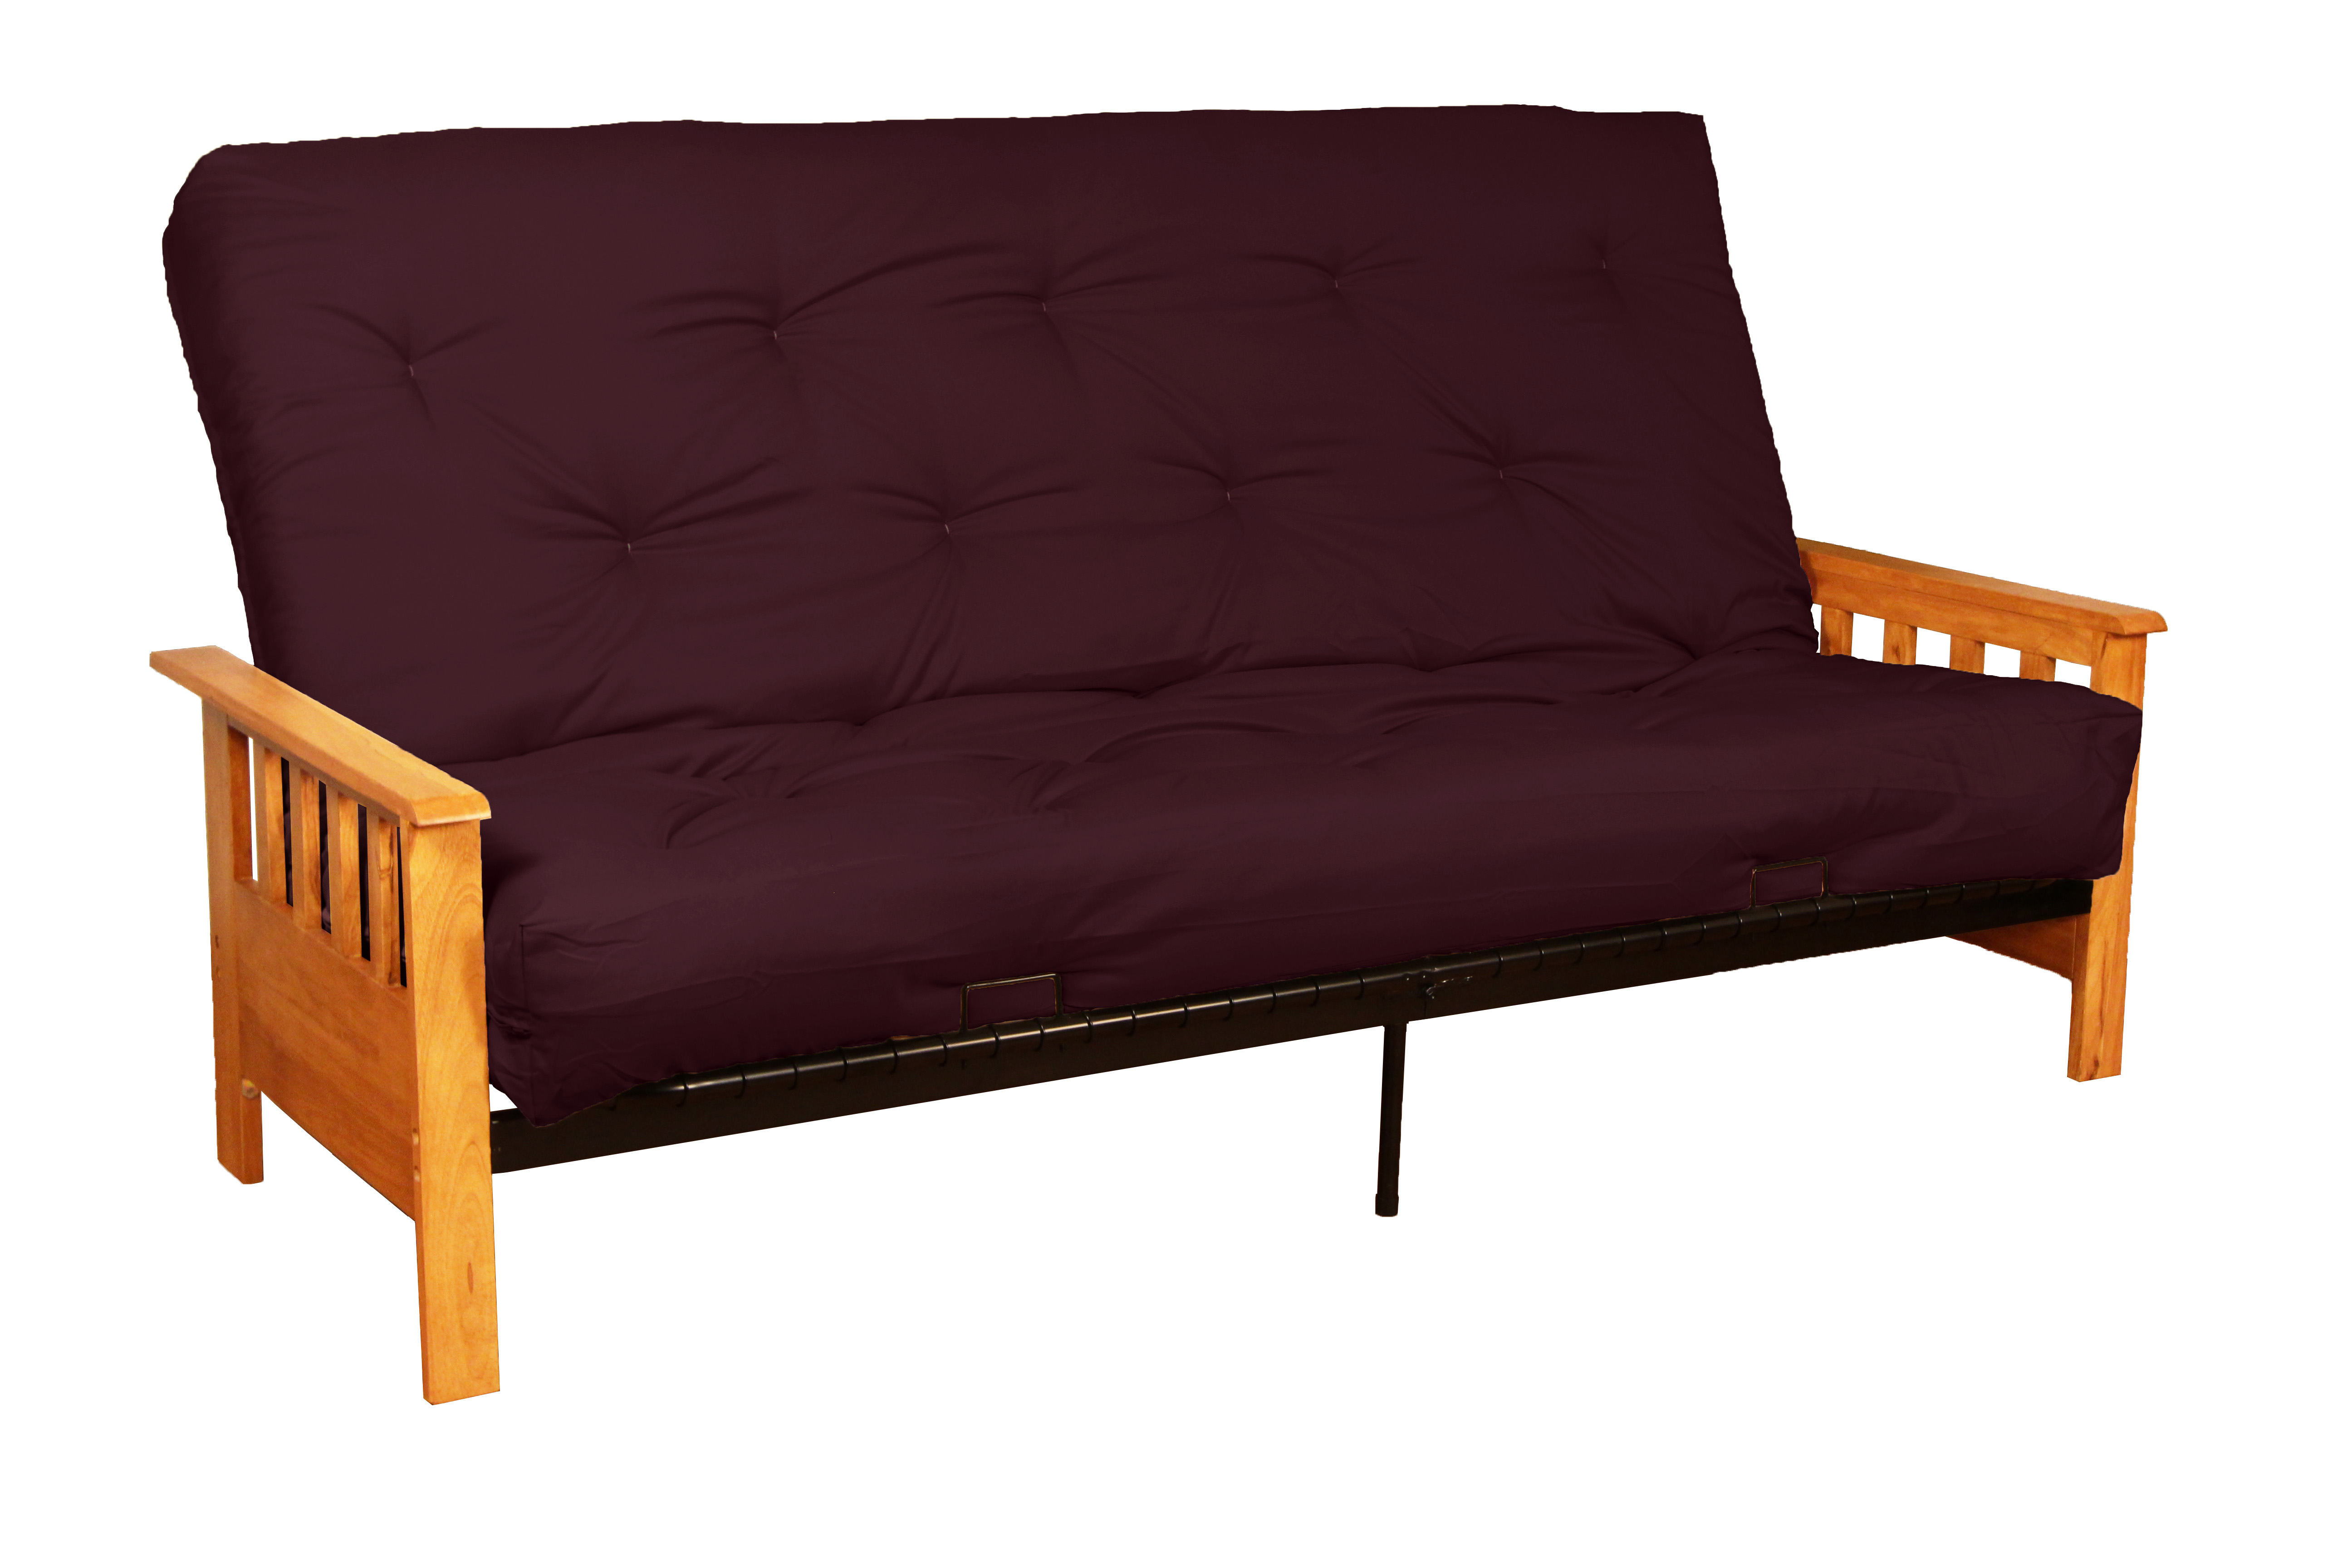 Arts U0026 Crafts 10 Inch Loft Inner Spring Futon Sofa Sleeper Bed, Queen Size,  Natural Arms, Twill Burgundy   Walmart.com